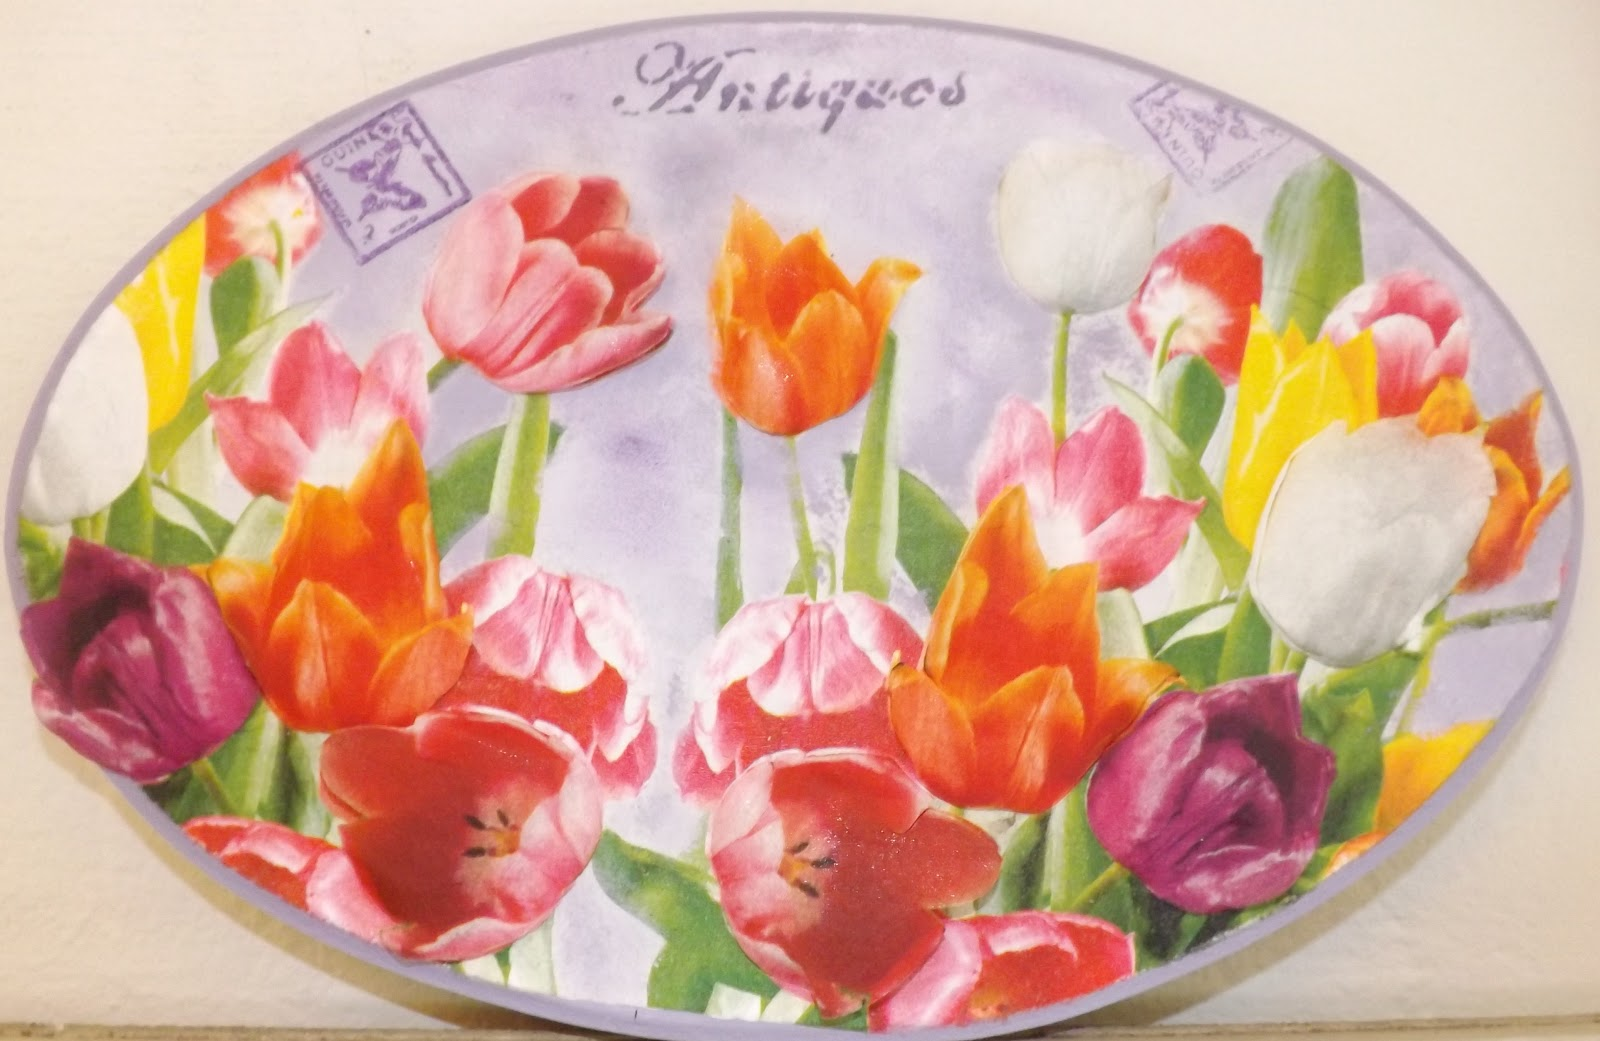 Taller de pintura decorativa tuliopanes en decoupage 3d for Pintura decorativa efeito 3d